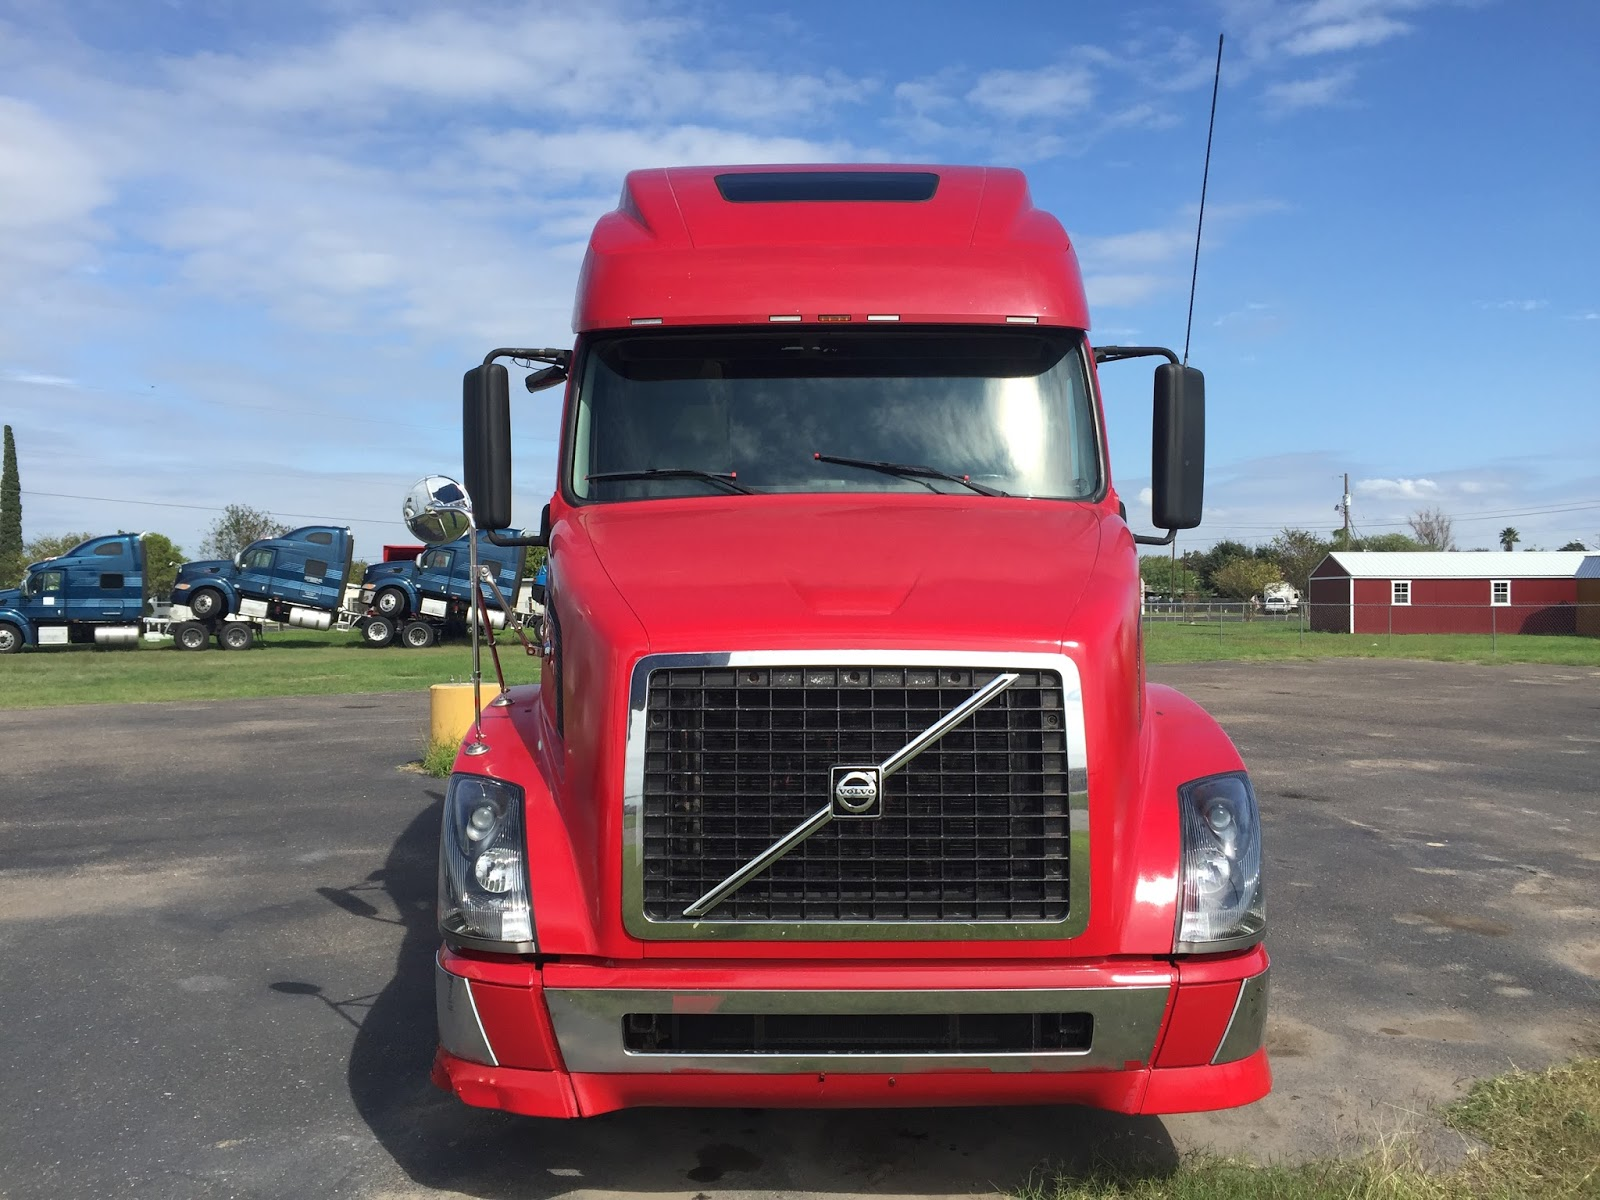 Heavy duty truck sales december special you can own this 2008 volvo vnl64t670 for only 5 000 down 400hp cummins 9 speed manual transmision jakes